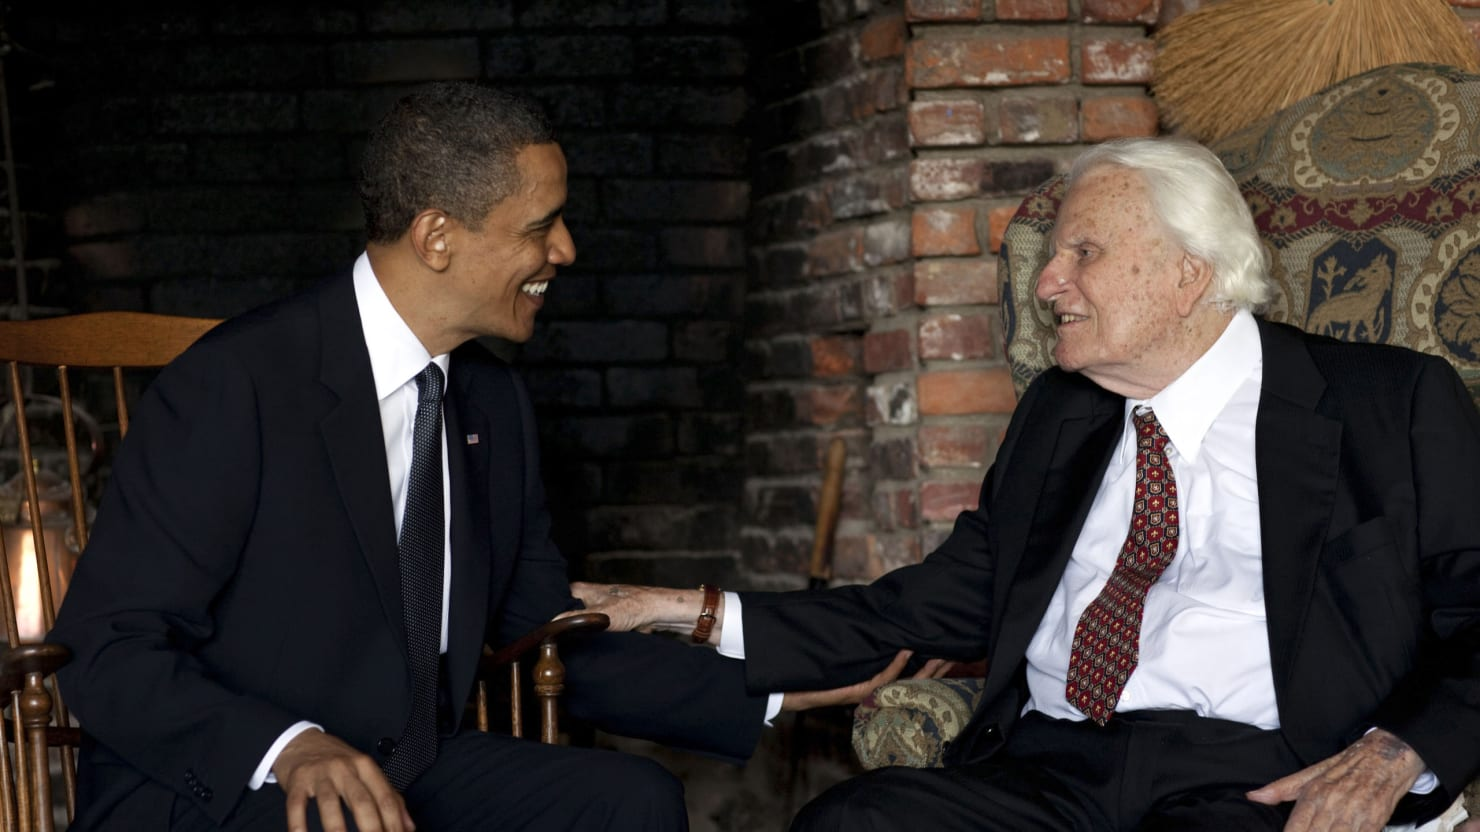 When Obama Visited Billy Graham Each Man Prayed For The Other